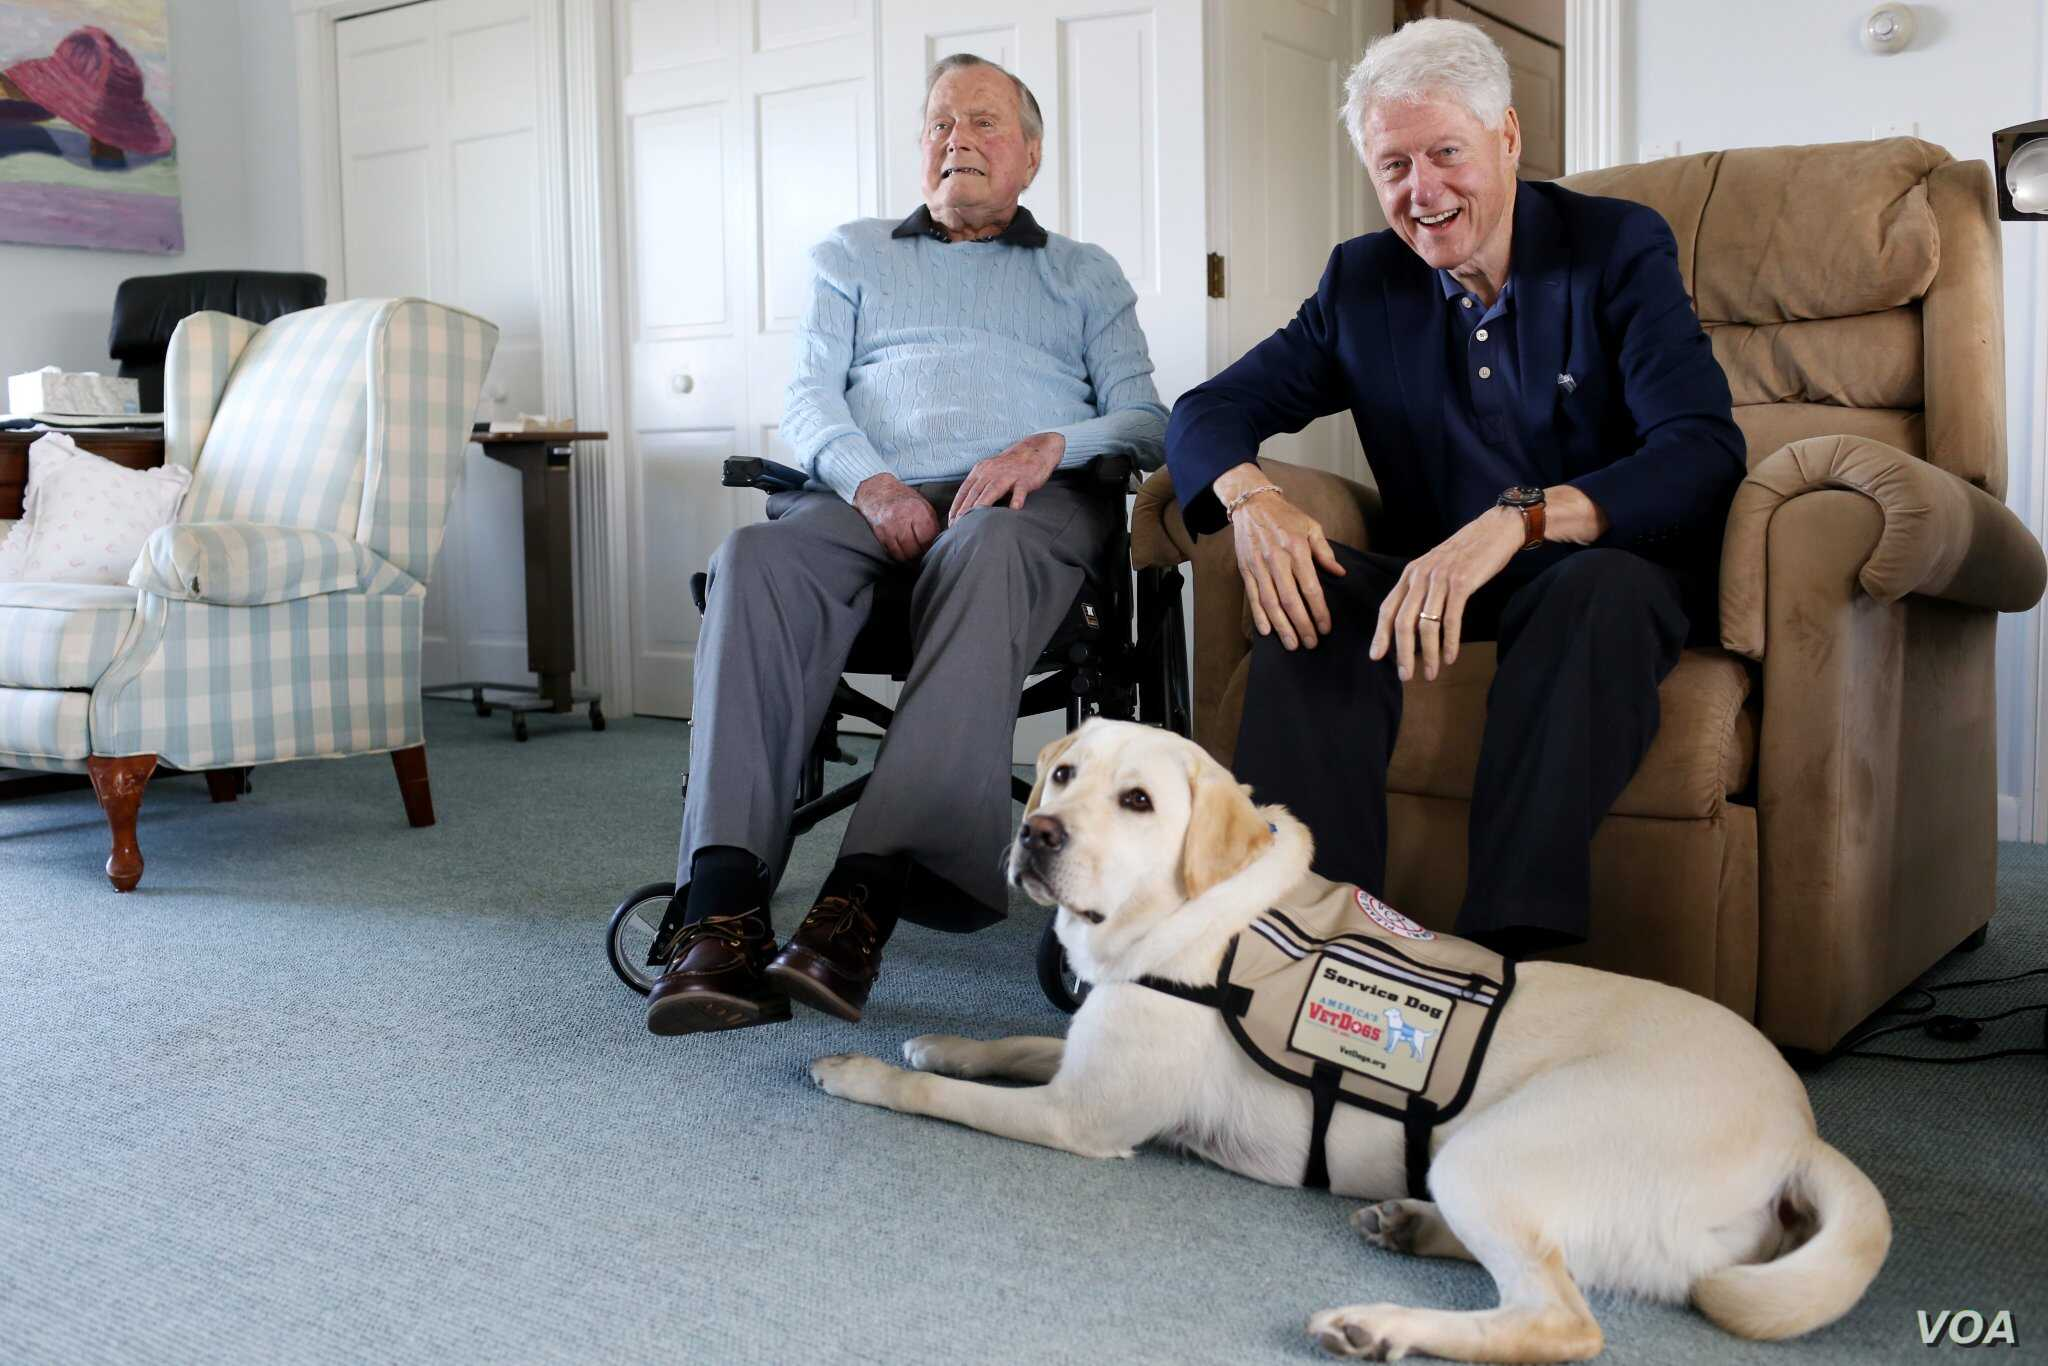 Former Republican President George H.W. Bush, left, and former President Bill Clinton, visiting Bush, pose for a photo with Sully, a yellow Labrador retriever who'll be Bush's first service dog at his home in Kennebunkport, Maine, June 25, 2018.